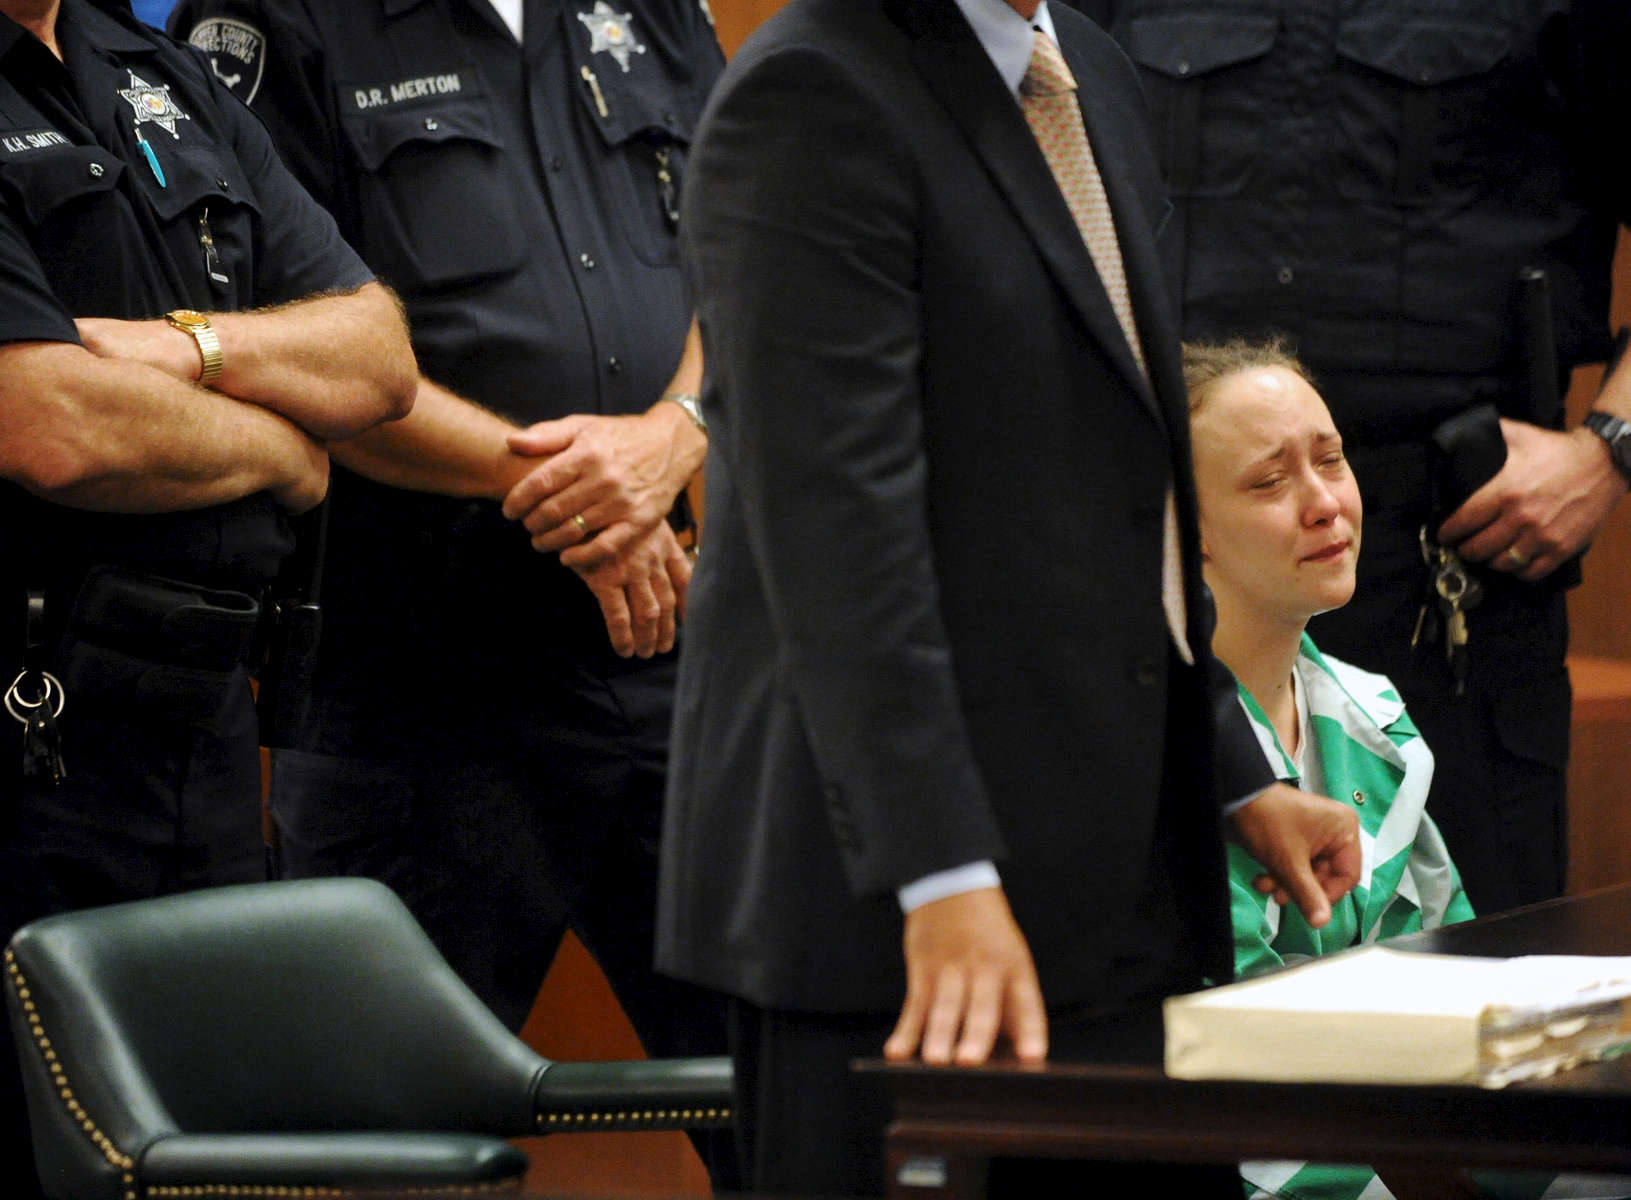 A tearful Jennie Mattison is surrounded by security personnel as she listens as her lawyer Tucker Stanclift address Warren County Judge John Hall during her sentencing hearing Tuesday, July 23, 2013. She was sentenced 1 to 3 years in prison for hindering the prosecution in the beating death of her son, Gary Carpenter III, by her boyfriend, Brandon Warrington. {quote}I think every day abou Gary. I cry every night. I regret not protecting him like I should have,{quote} Mattison told the court.(Jason McKibben - jmckibben@poststar.com)